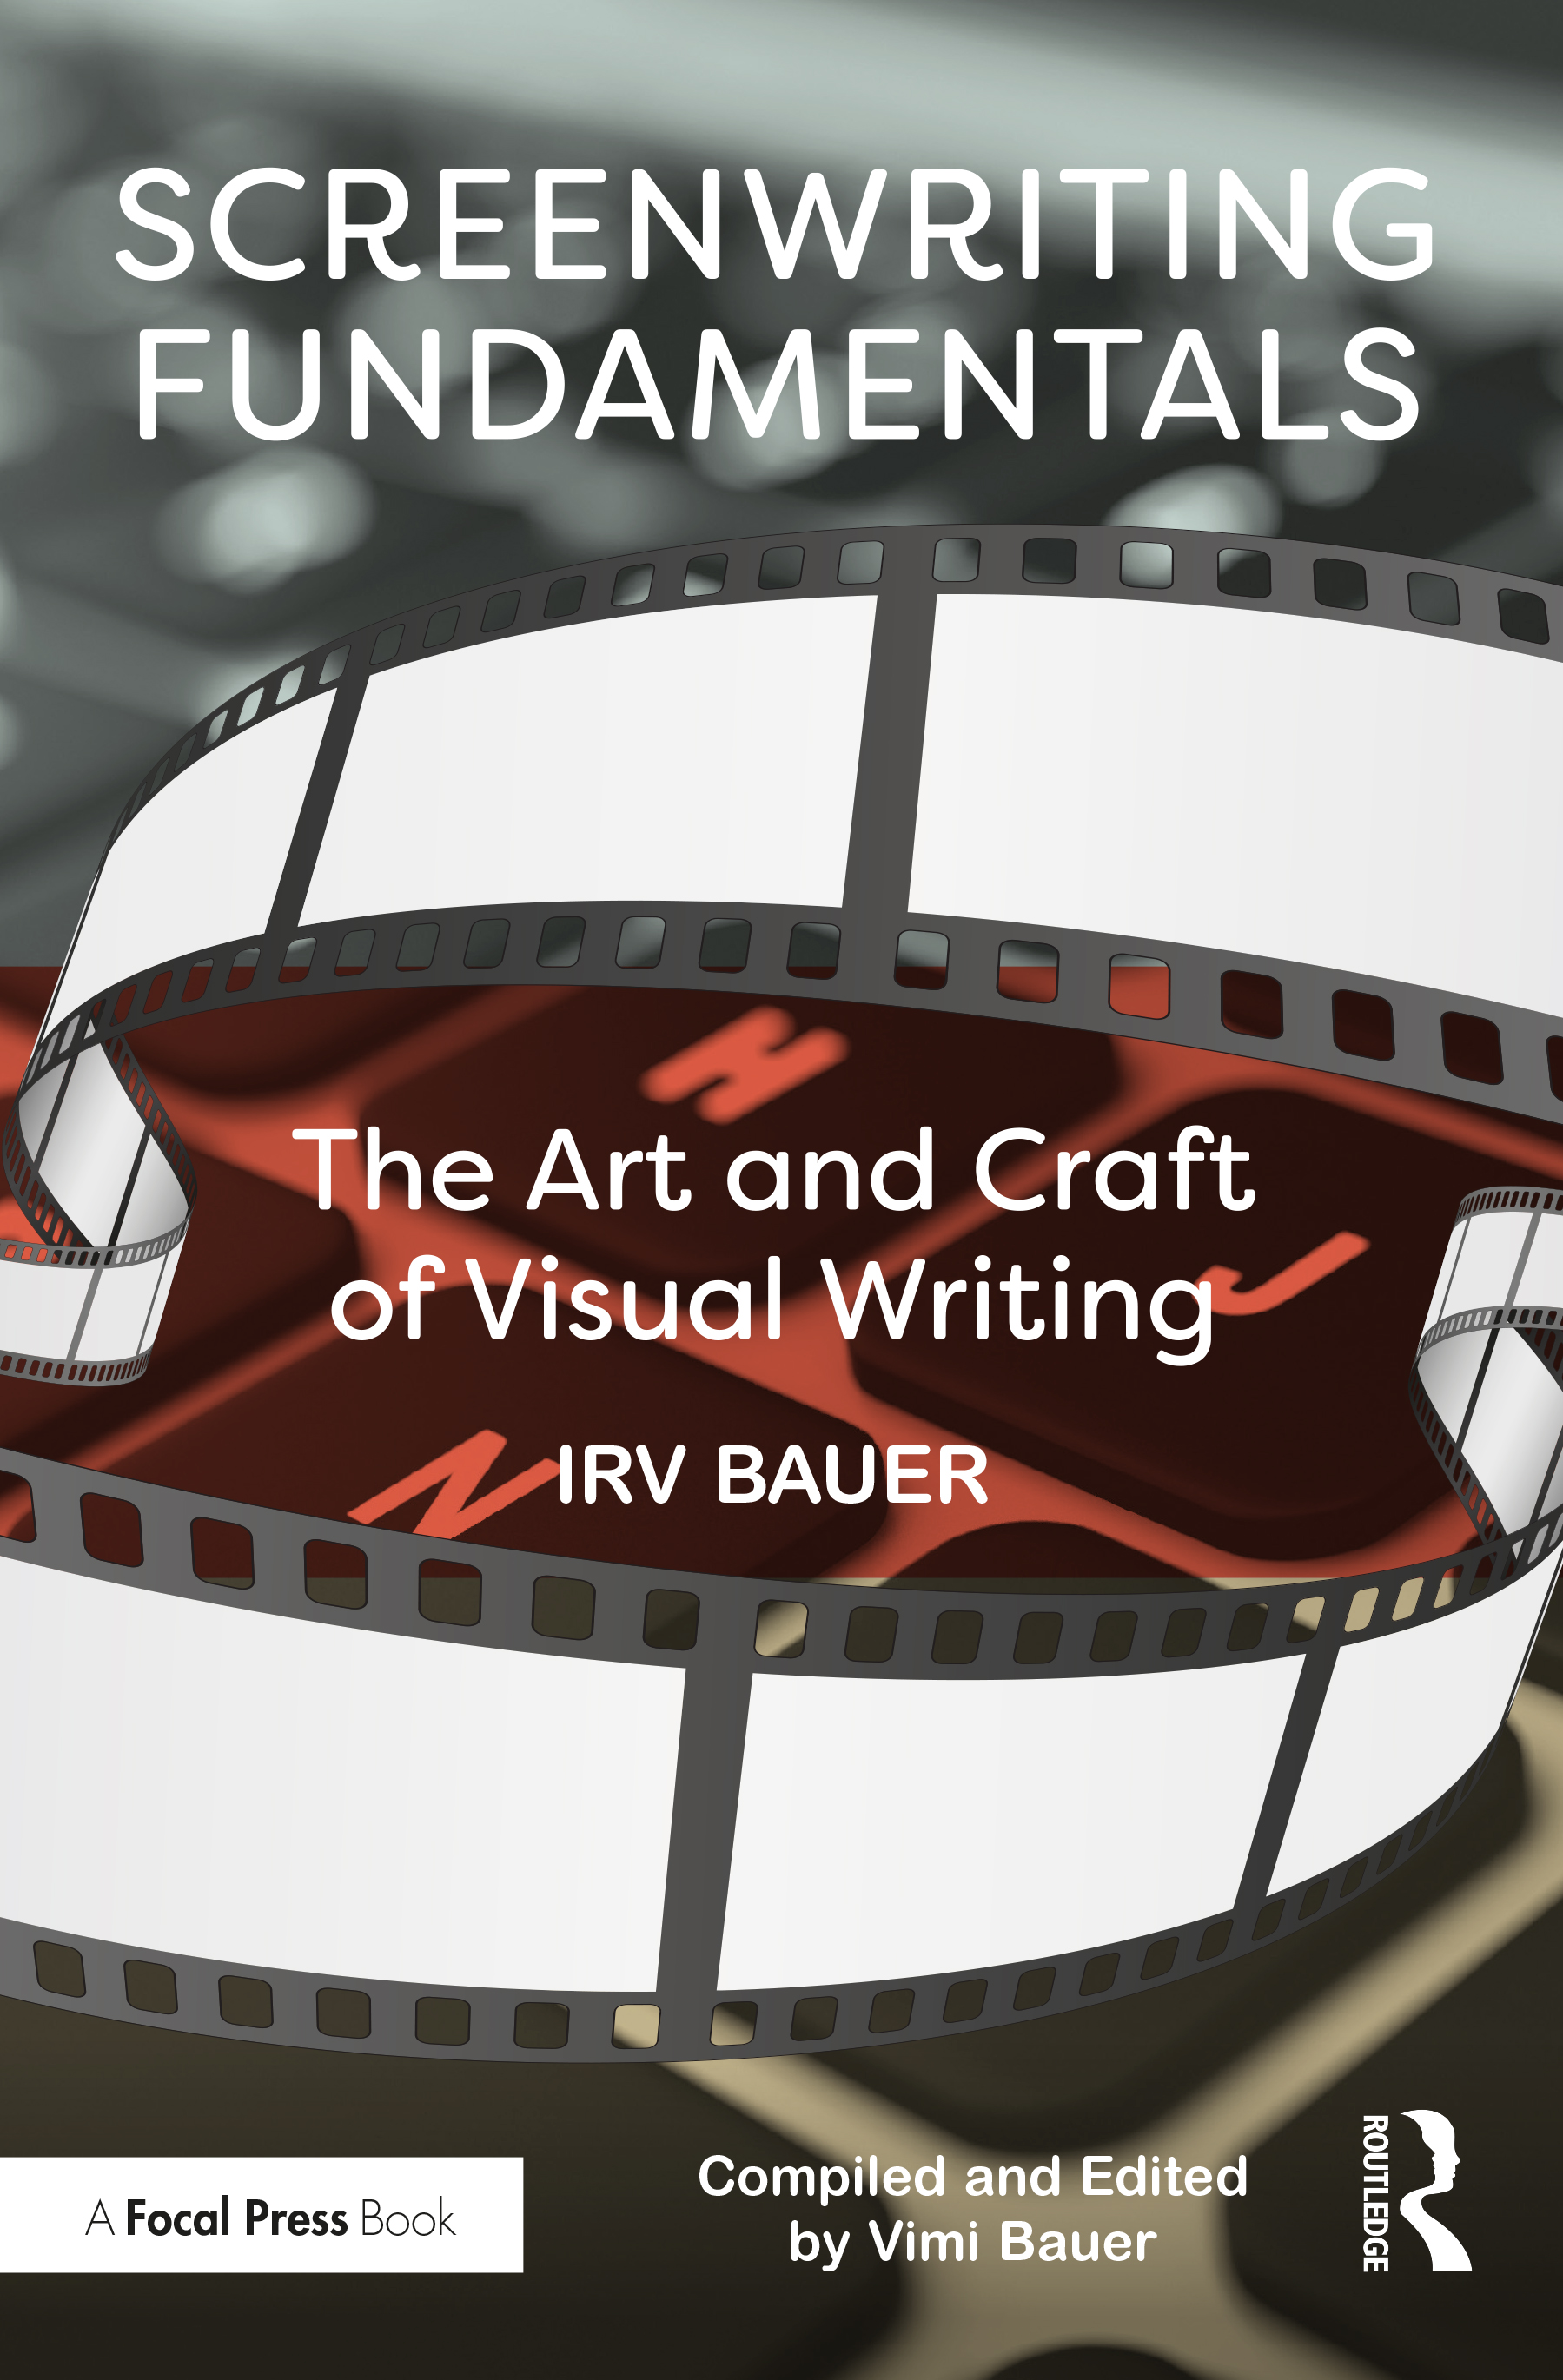 Screenwriting Fundamentals: The Art and Craft of Visual Writing book cover